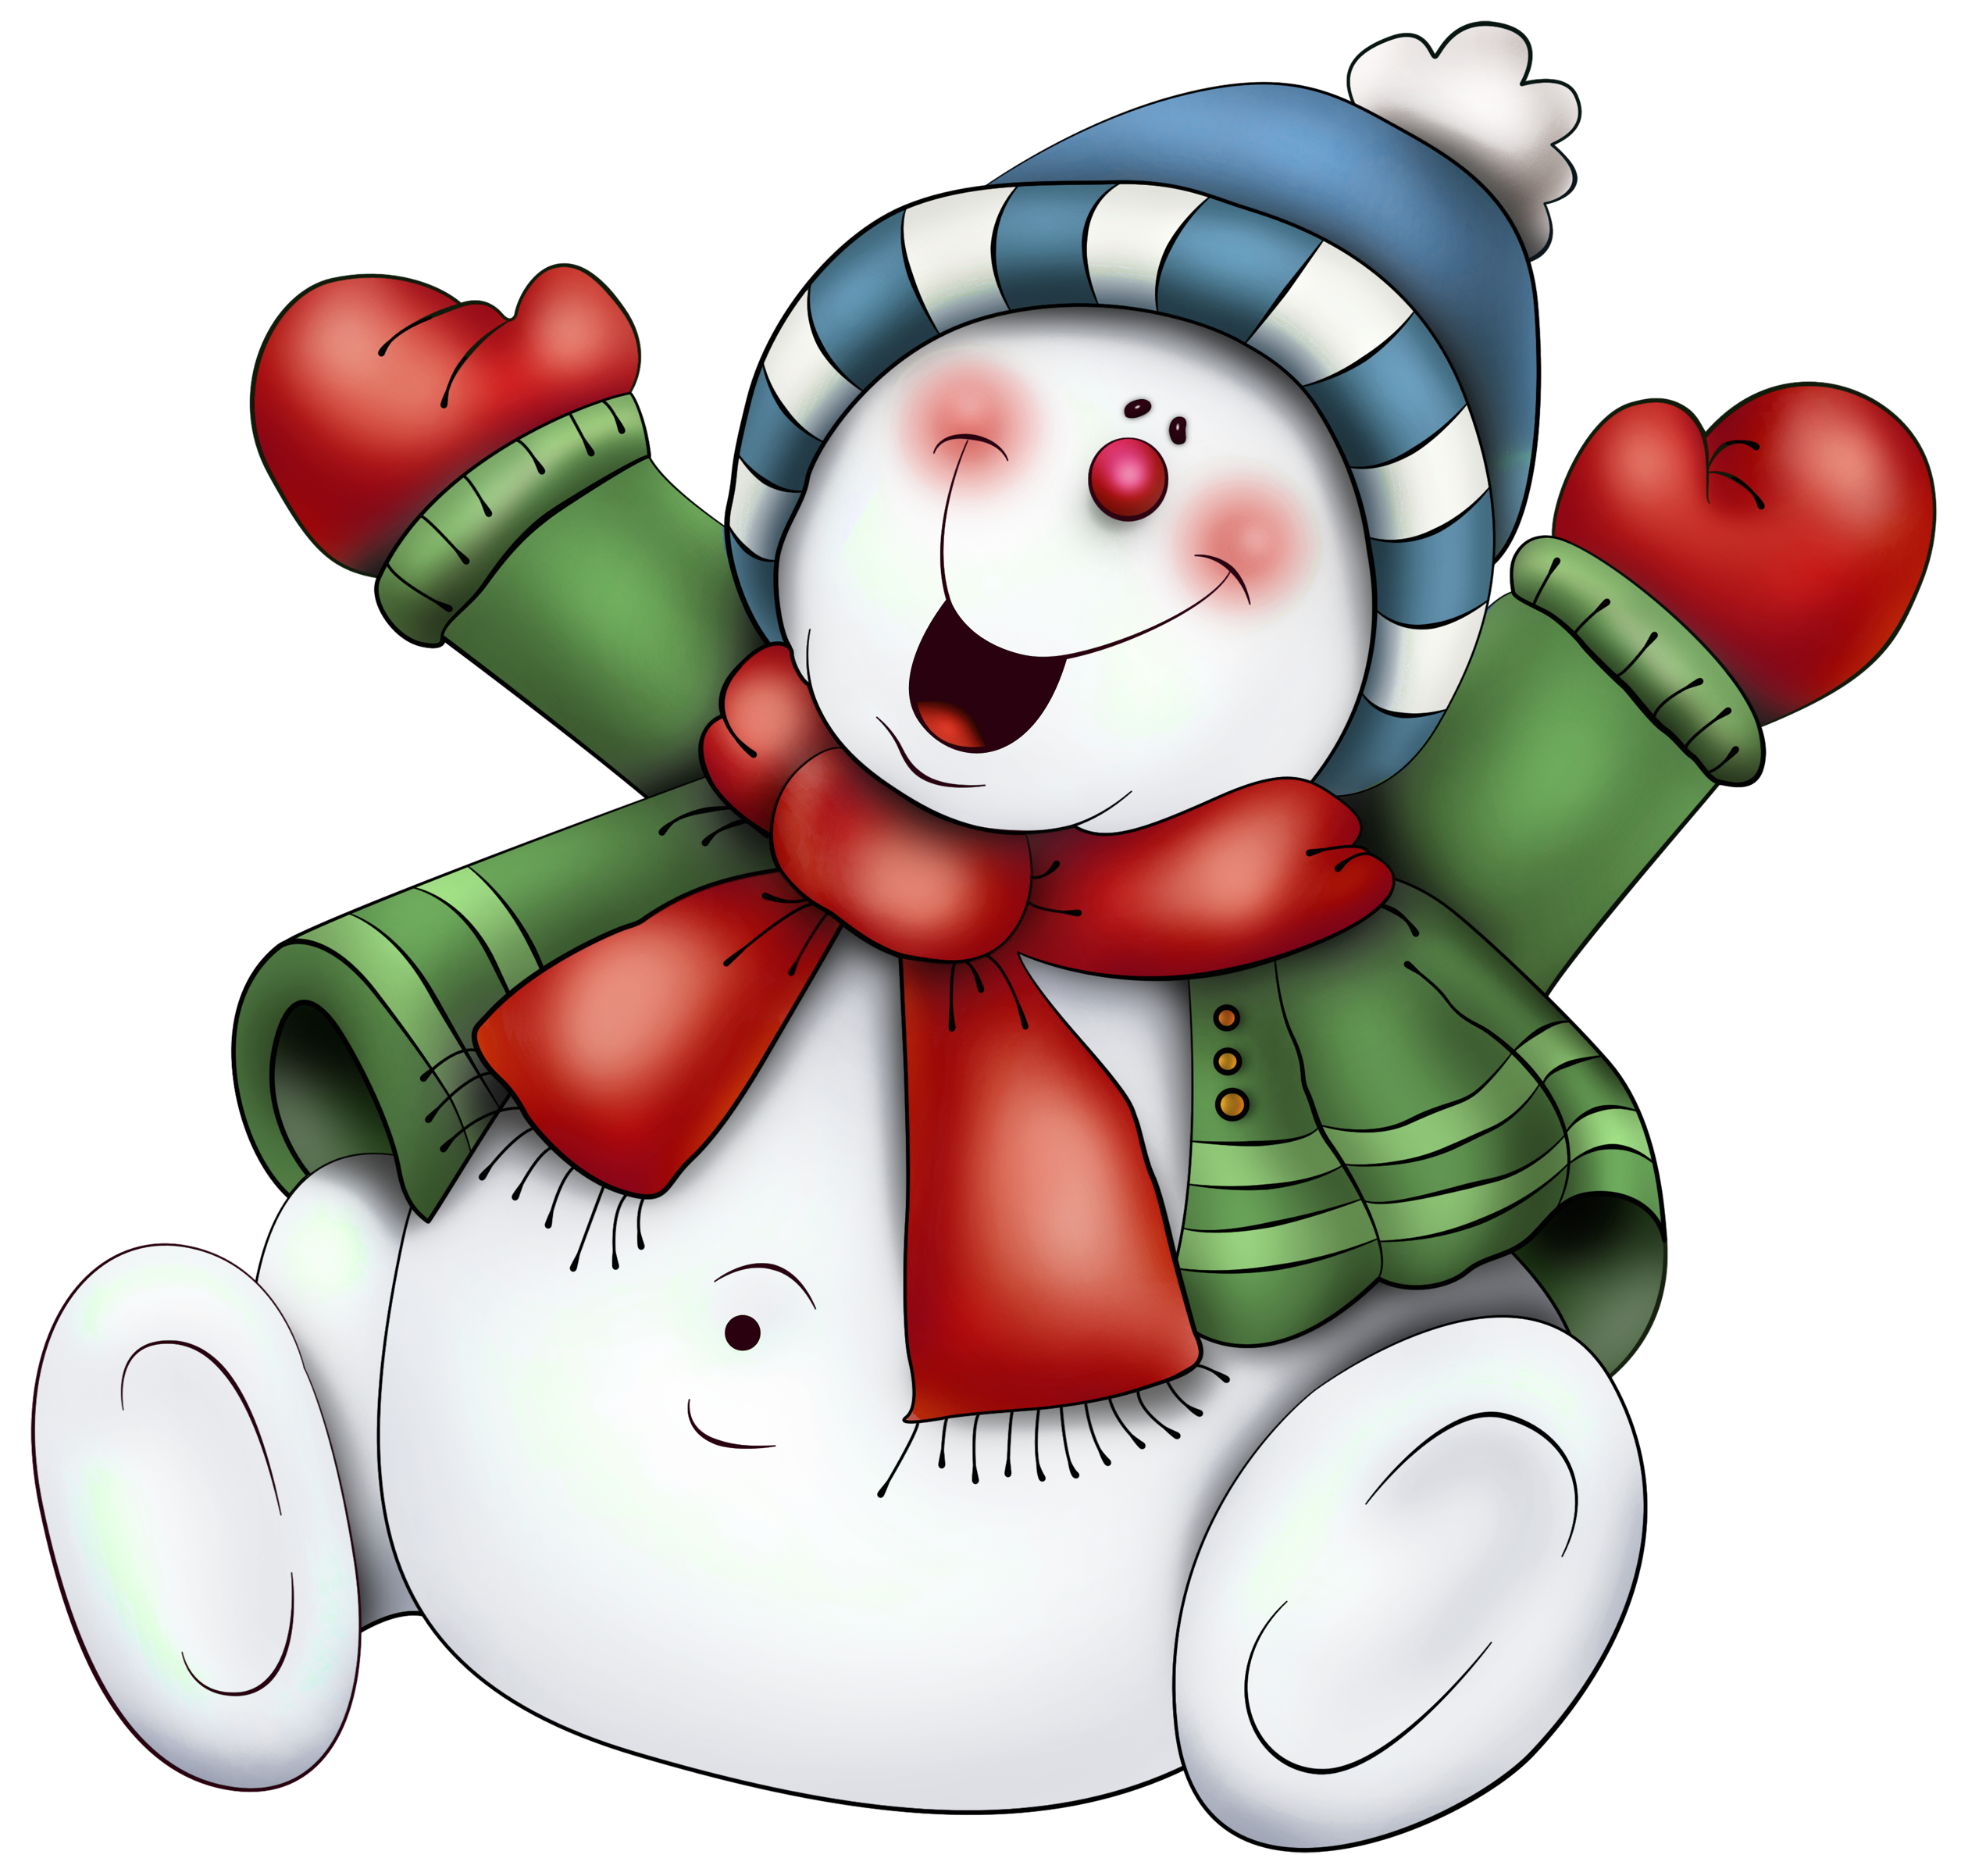 Mustang clipart lady. Snowman with scarf png